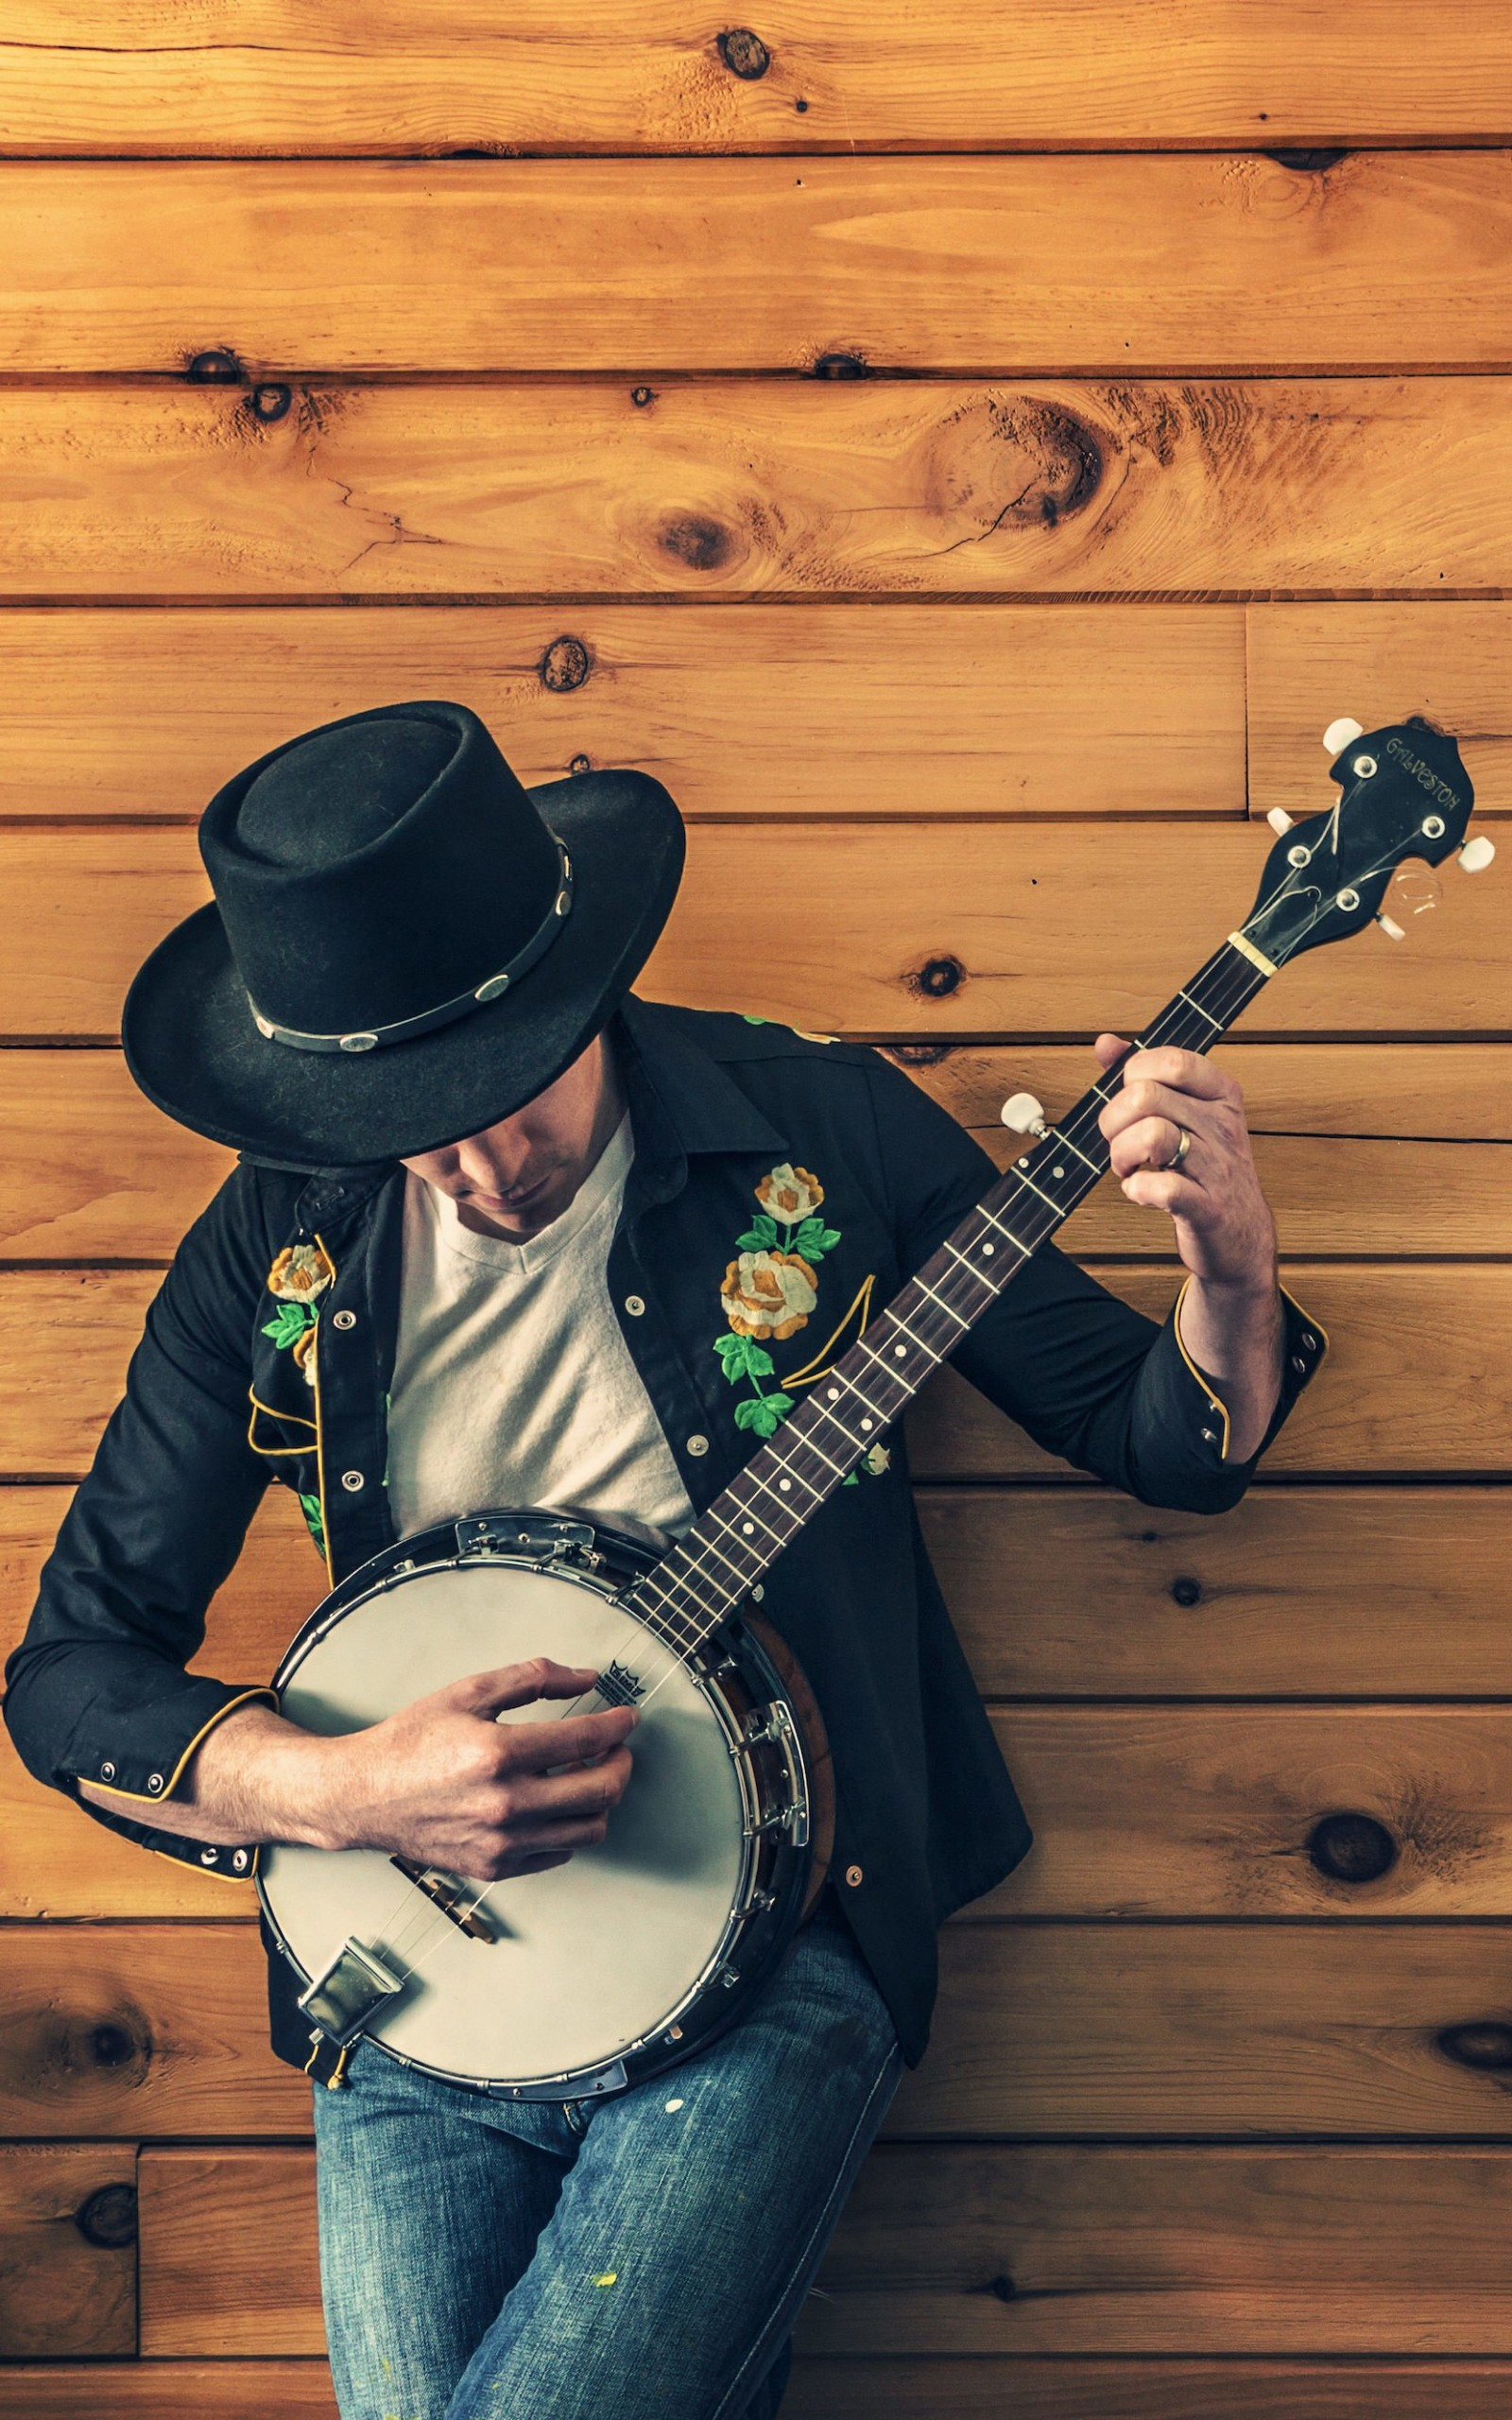 Banjo Player Wallpaper for Amazon Kindle Fire HDX 8.9